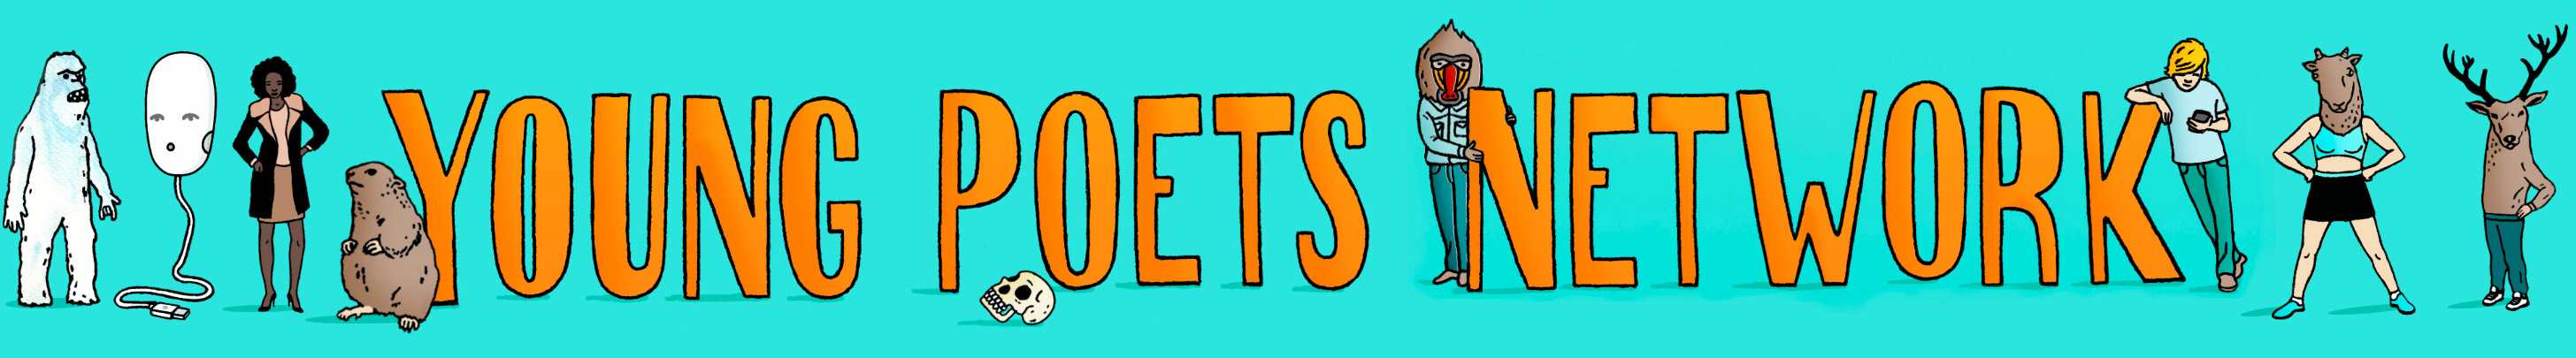 Poetry clipart editing writing. Opportunities young poets network